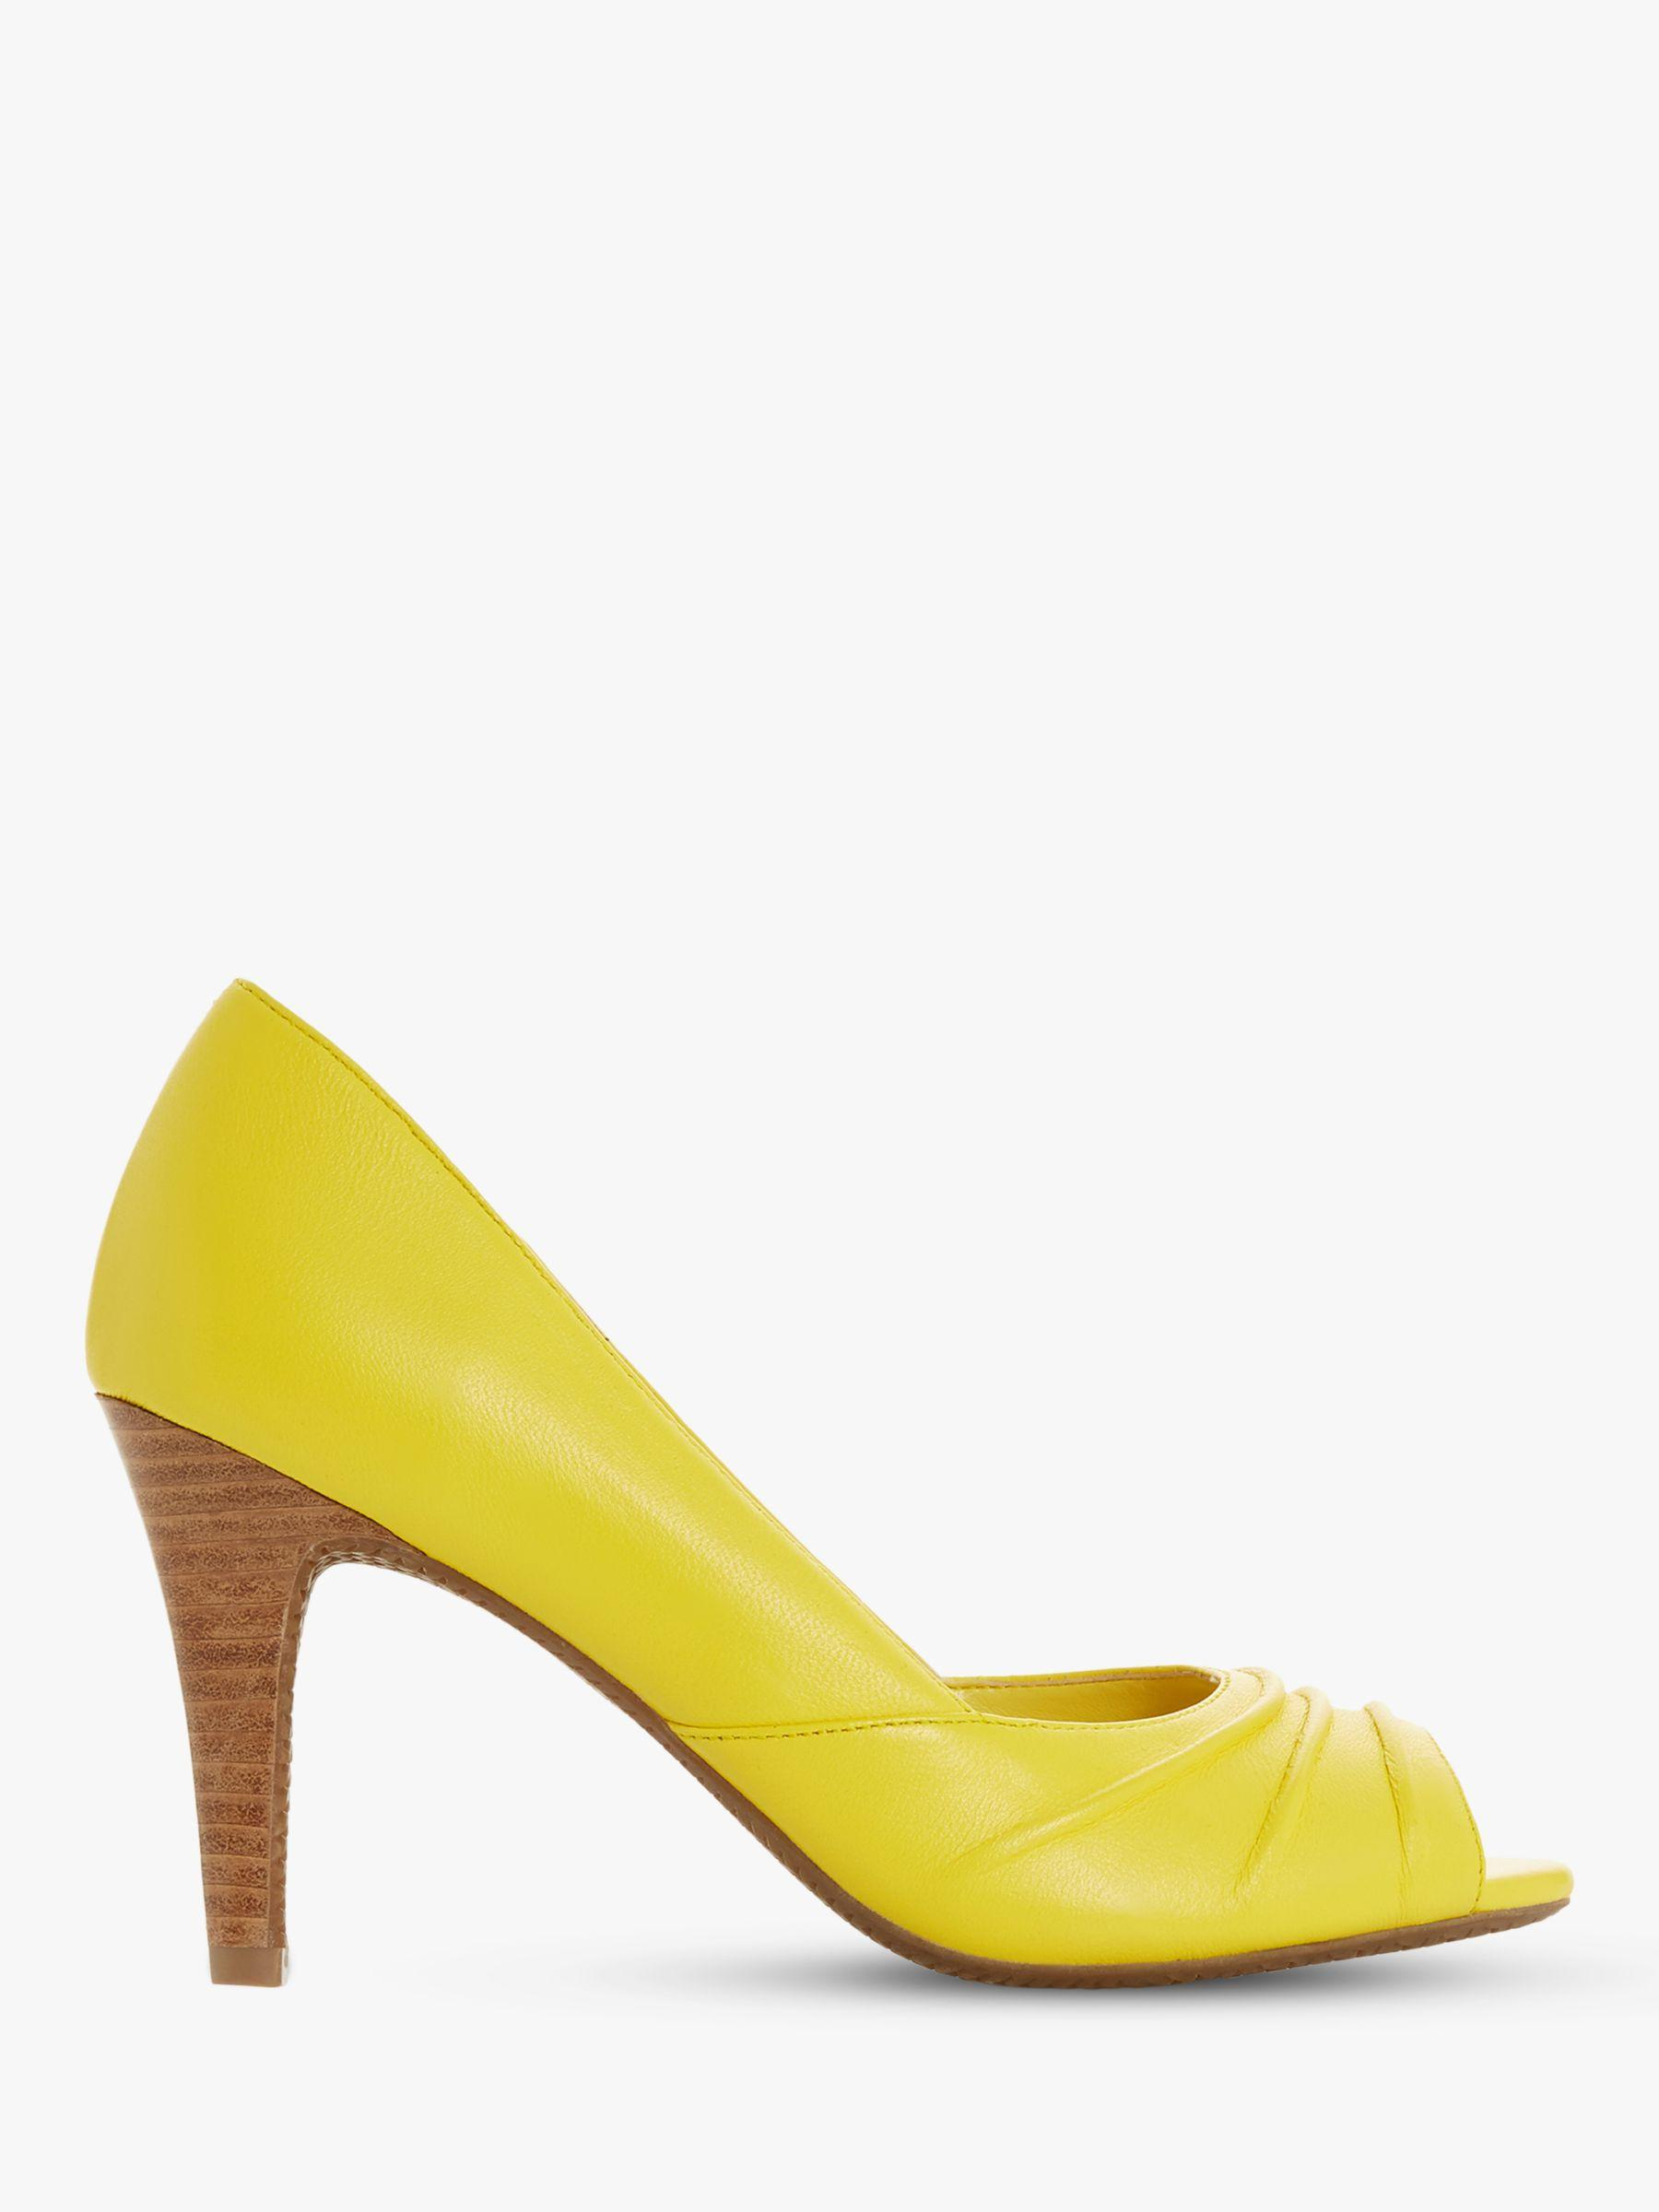 510518b4829 Dune Yellow Christey Open Toe Court Shoes